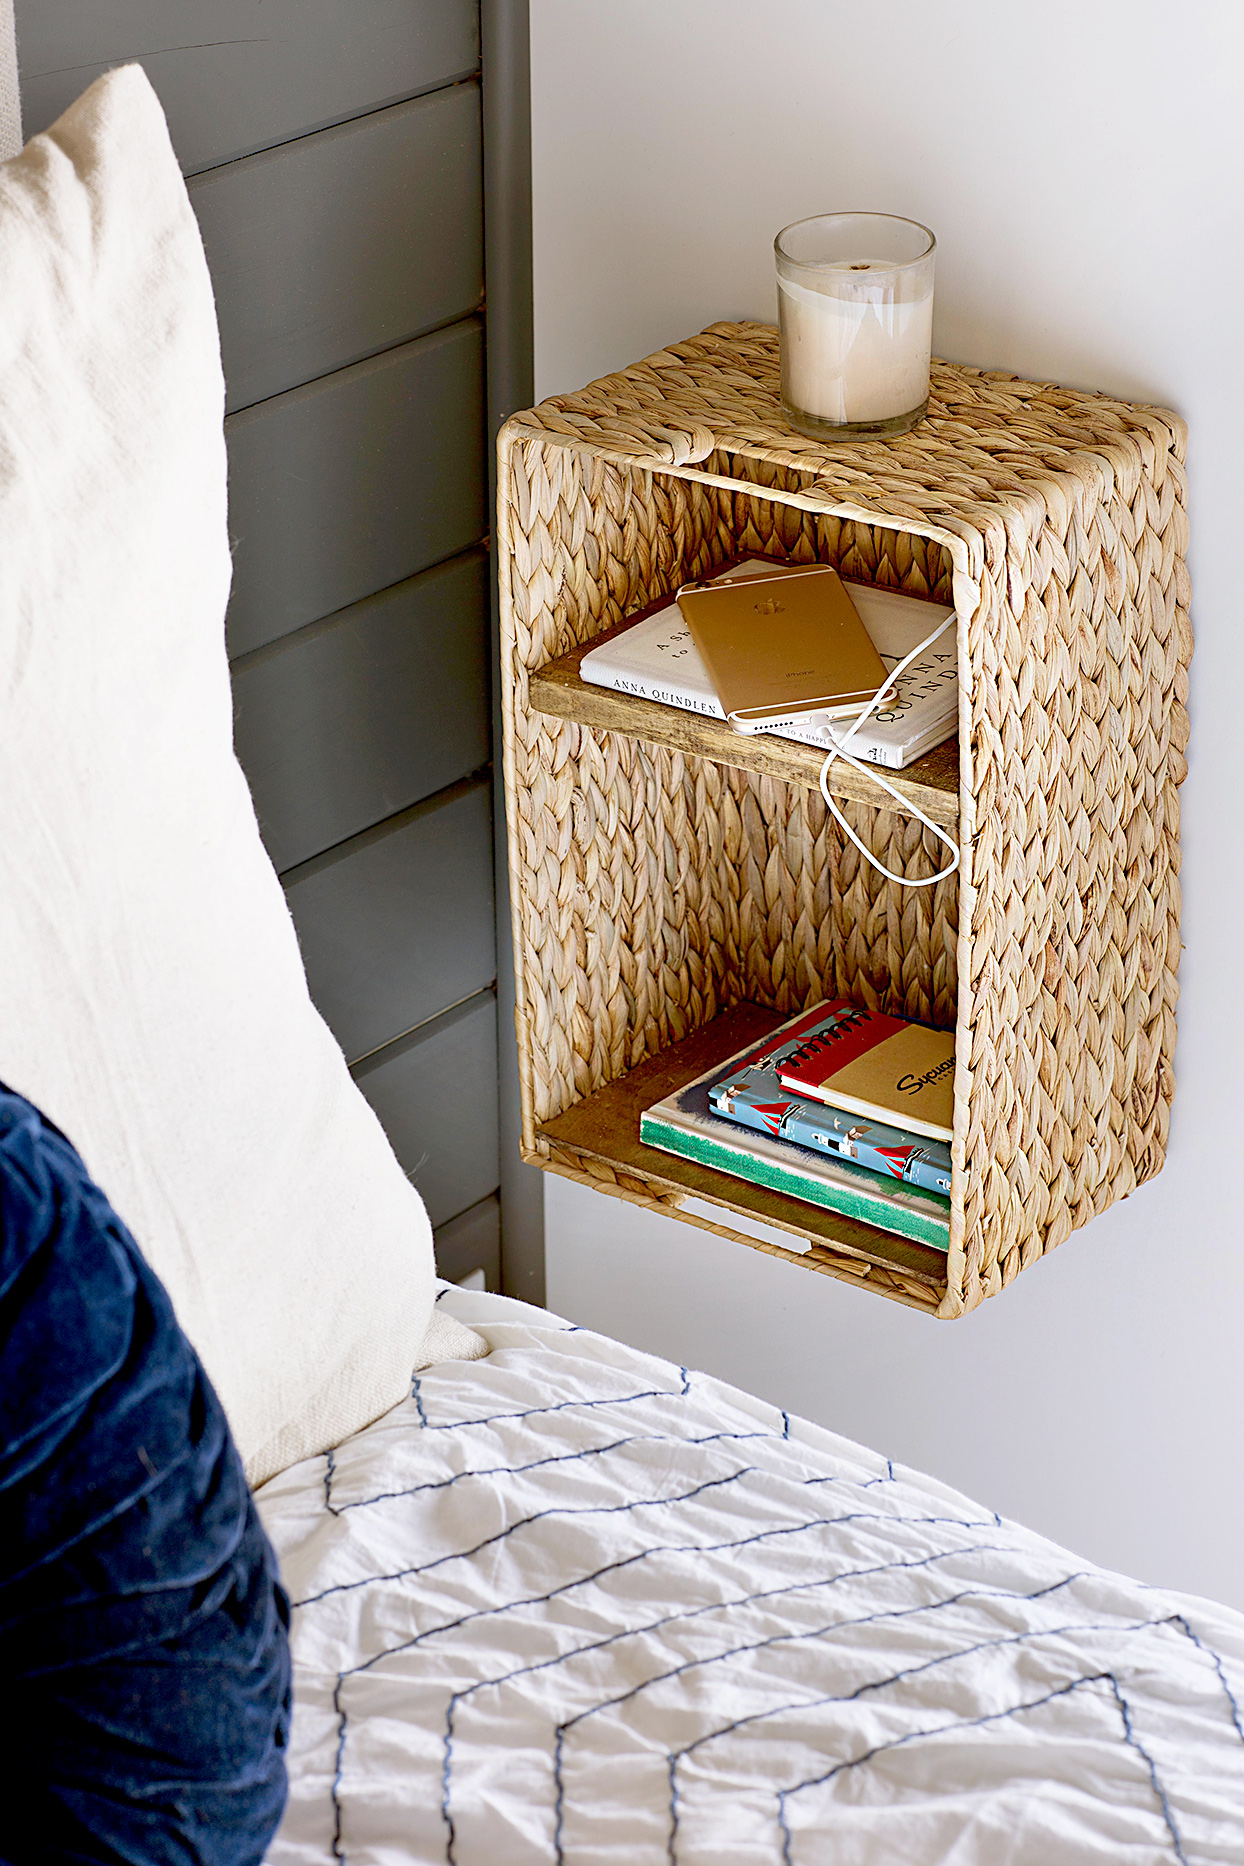 Hanging wicker shelf holding books and laptop